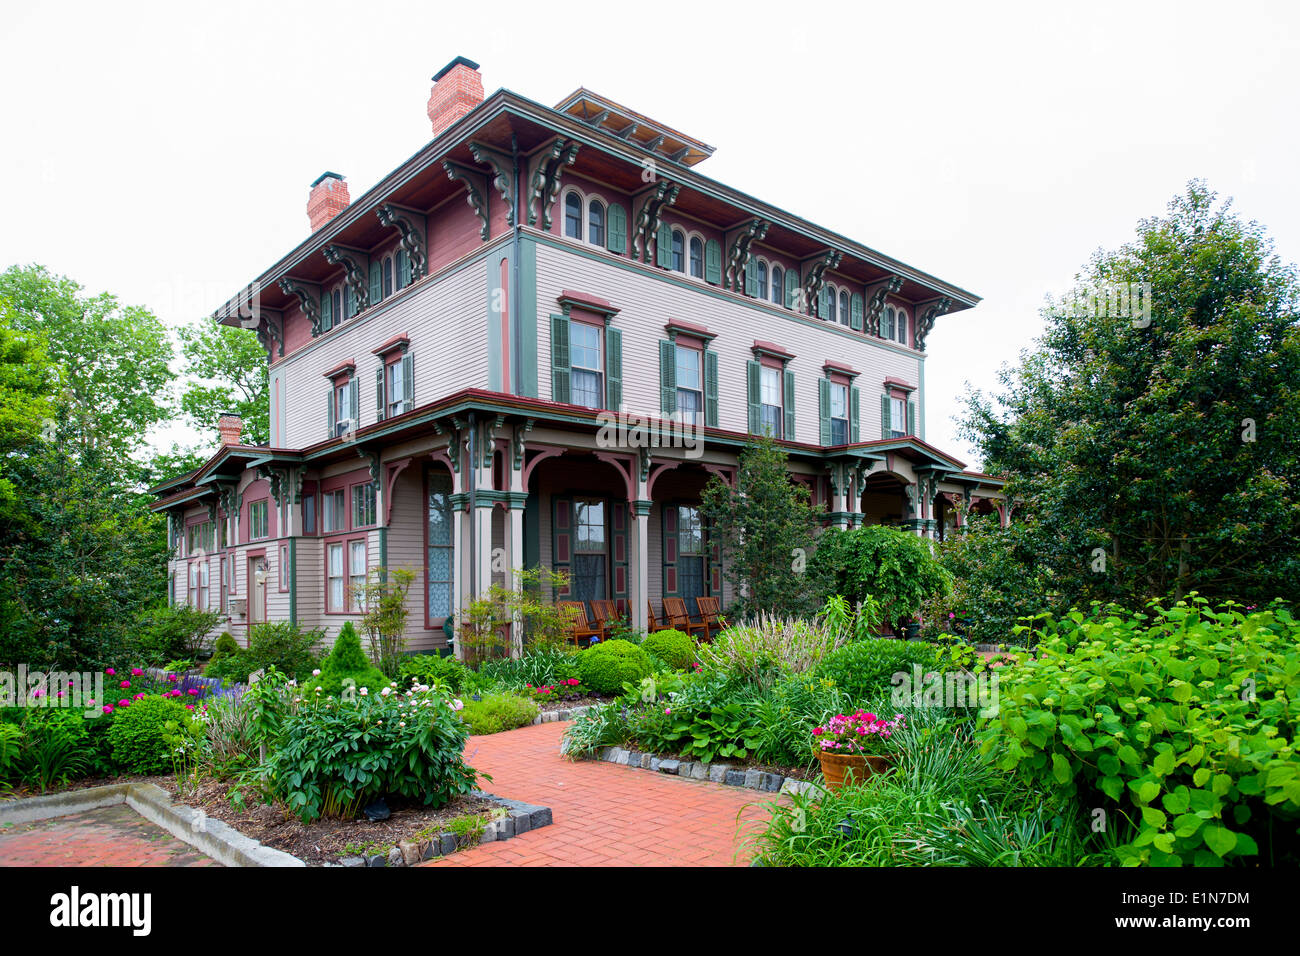 usa-new-jersey-nj-cape-may-southern-mansion-b-b-hotel-old-victorian-E1N7DM.jpg